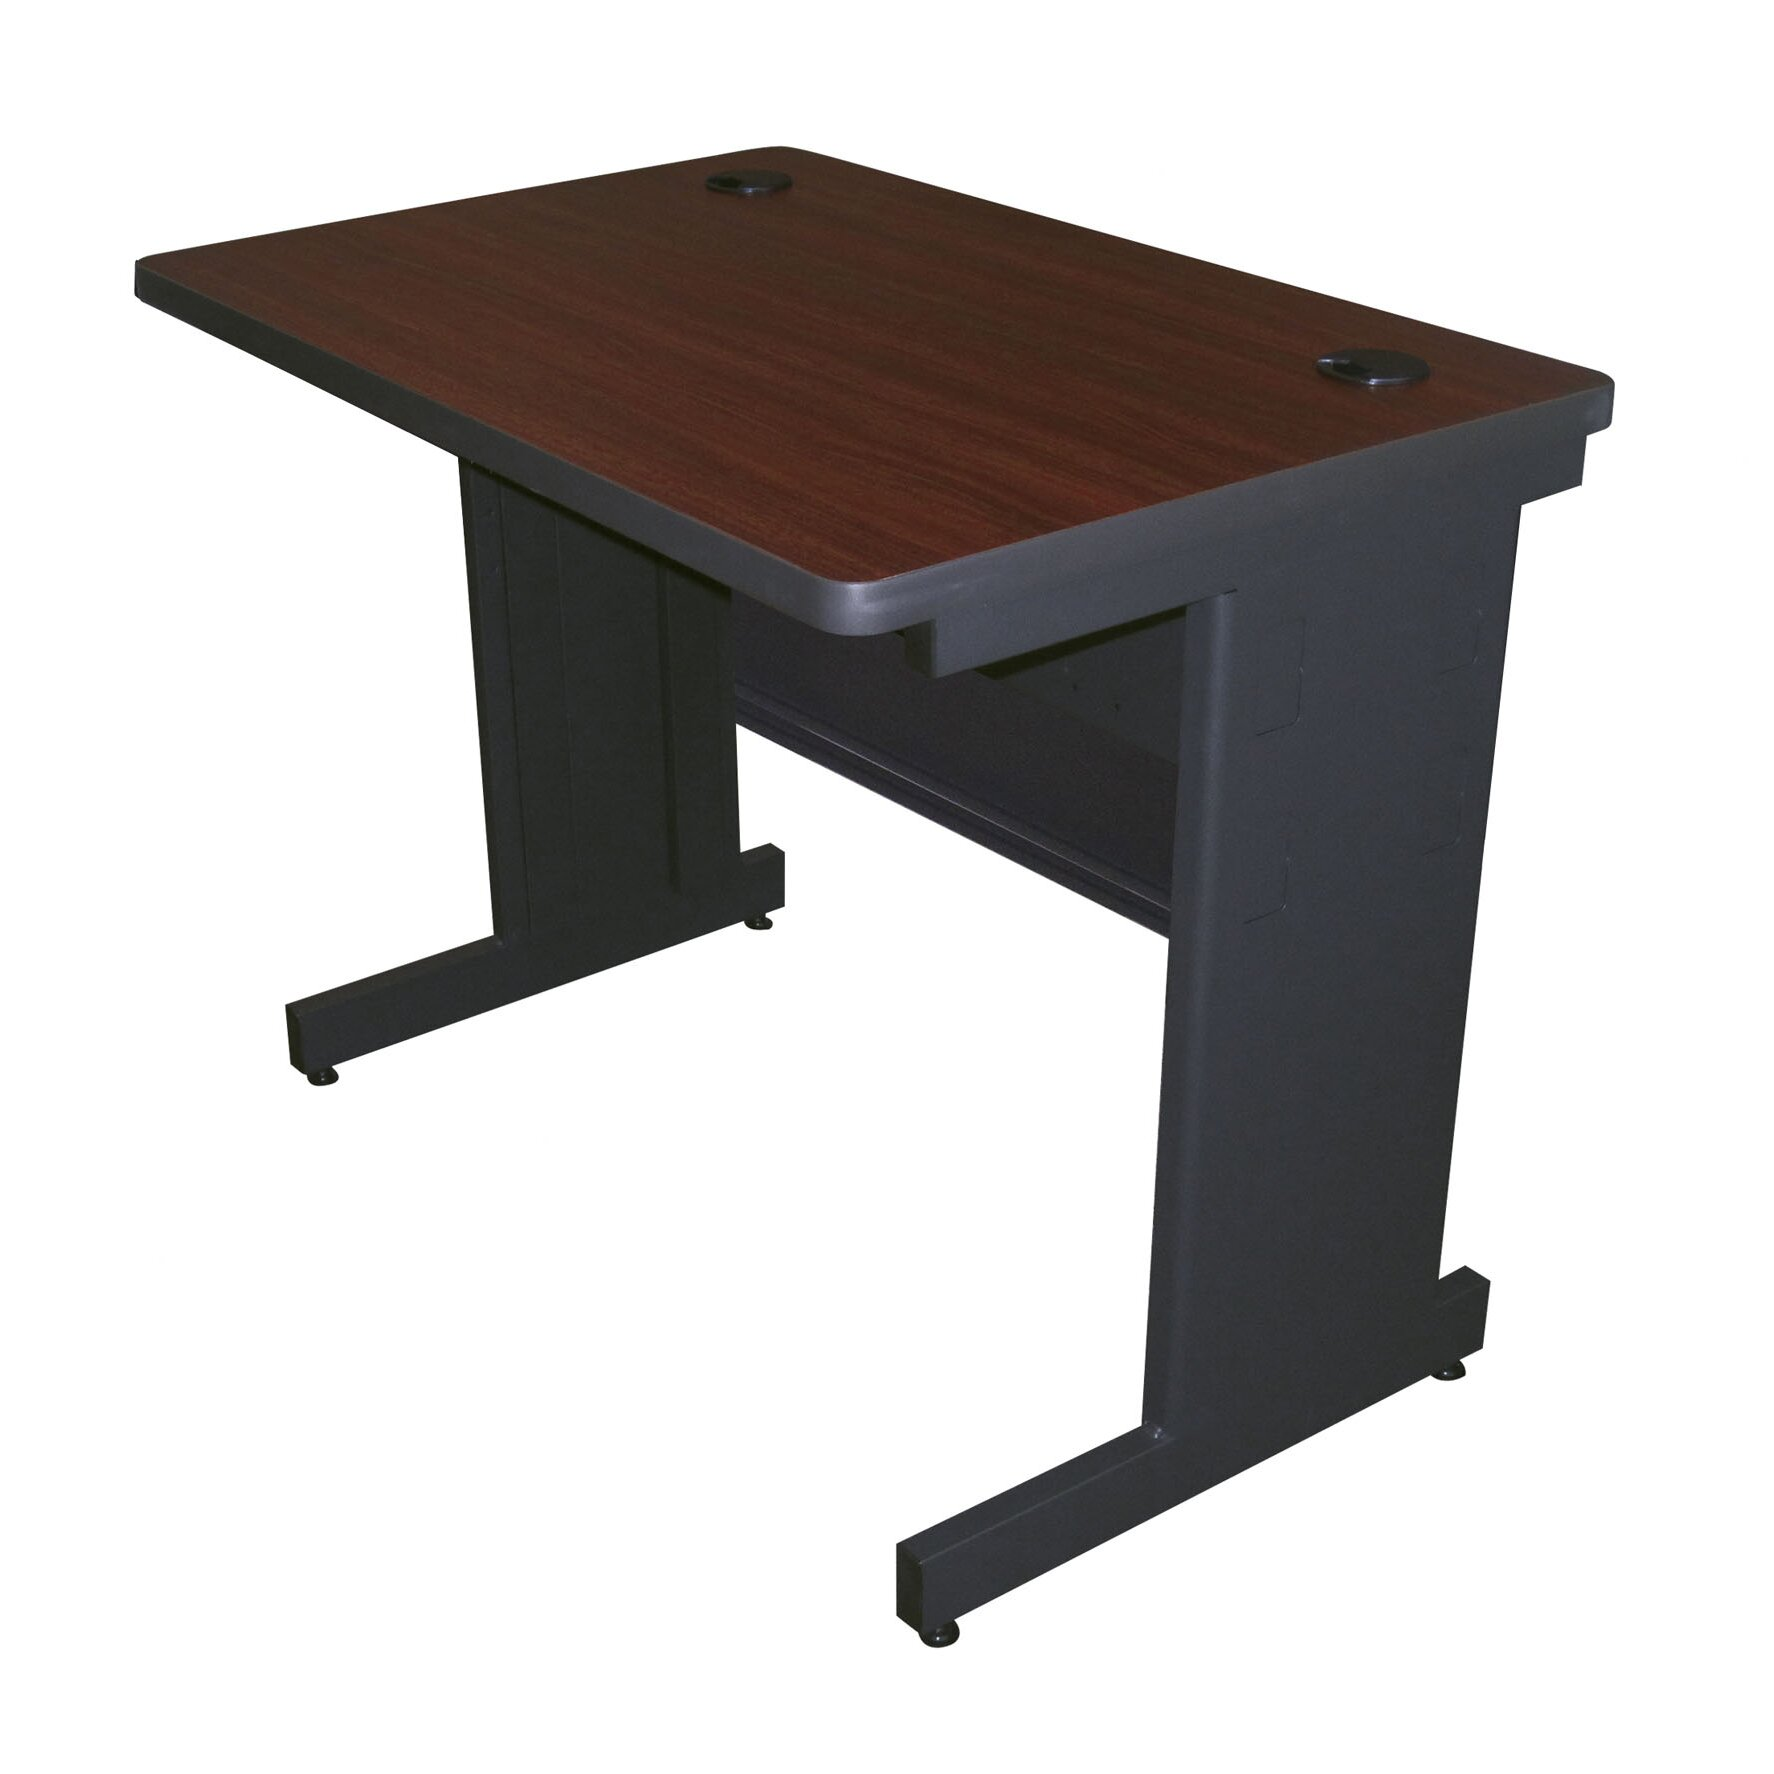 30 X 48 Folding Table picture on Marvel Office Furniture Pronto Training Table ELV1027 with 30 X 48 Folding Table, Folding Table 573ac89dd05b90f8d0a8105b2dec0f5e